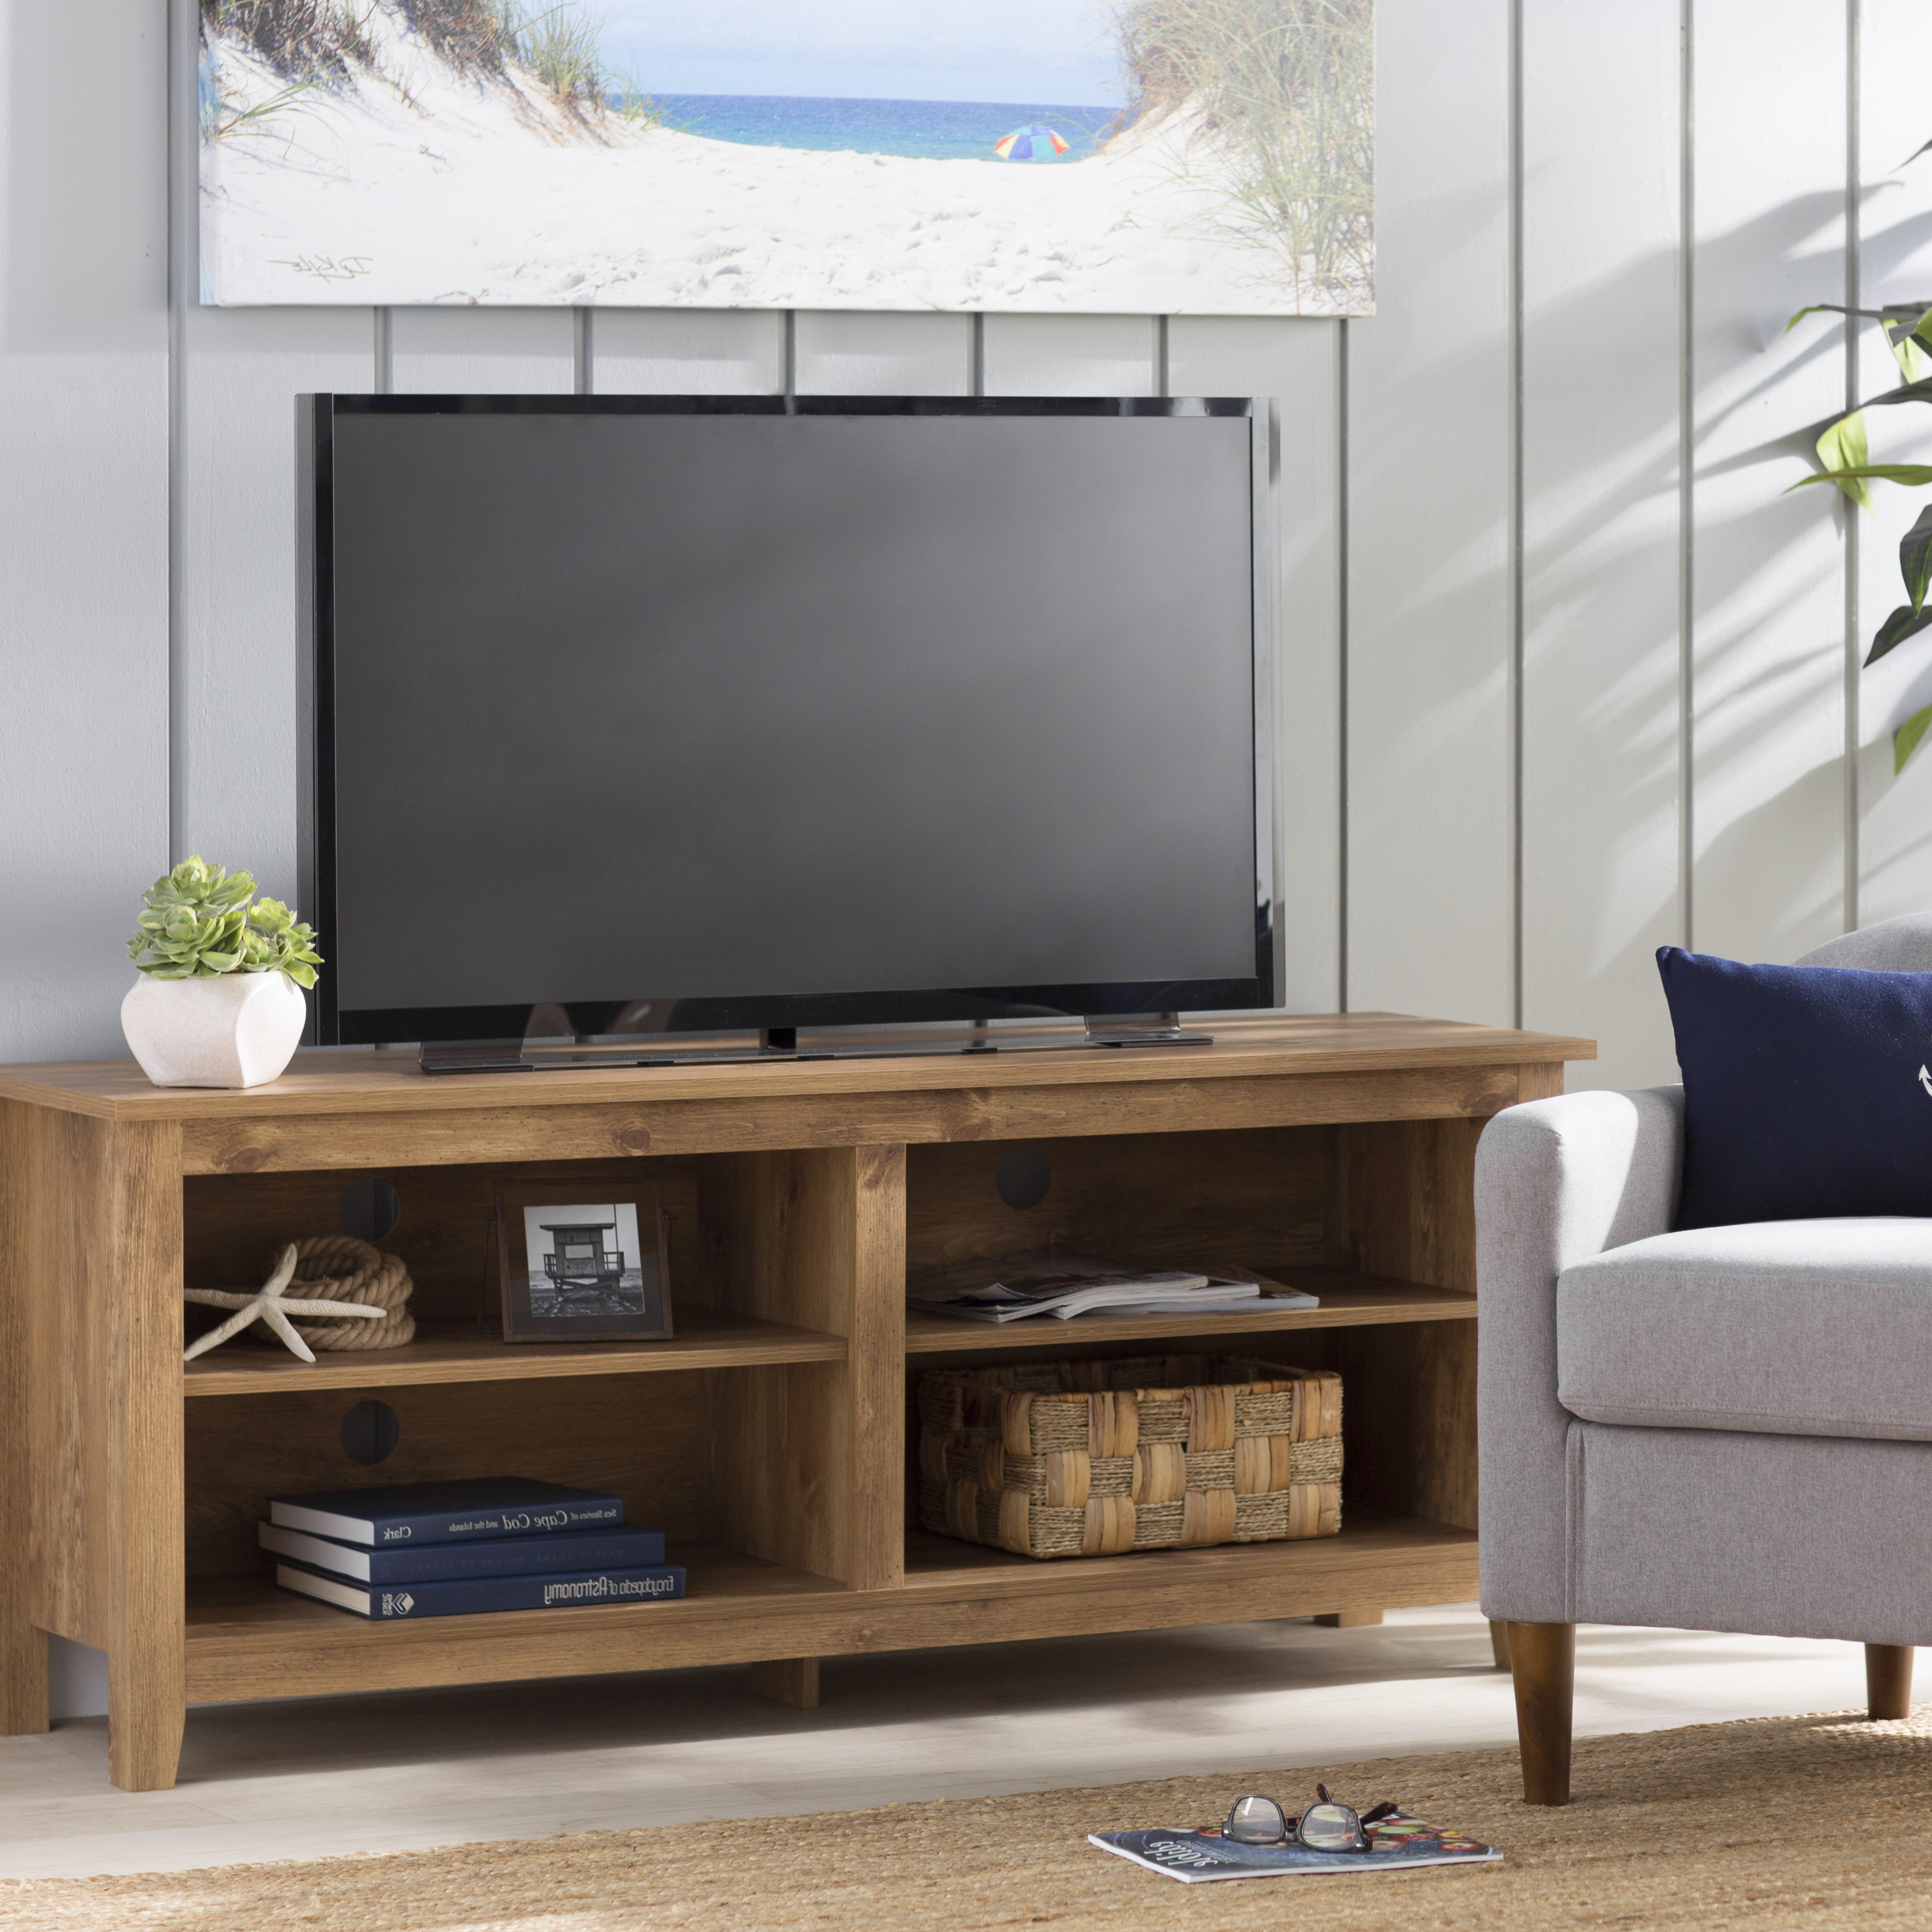 Wayfair Intended For Ducar 64 Inch Tv Stands (View 19 of 20)